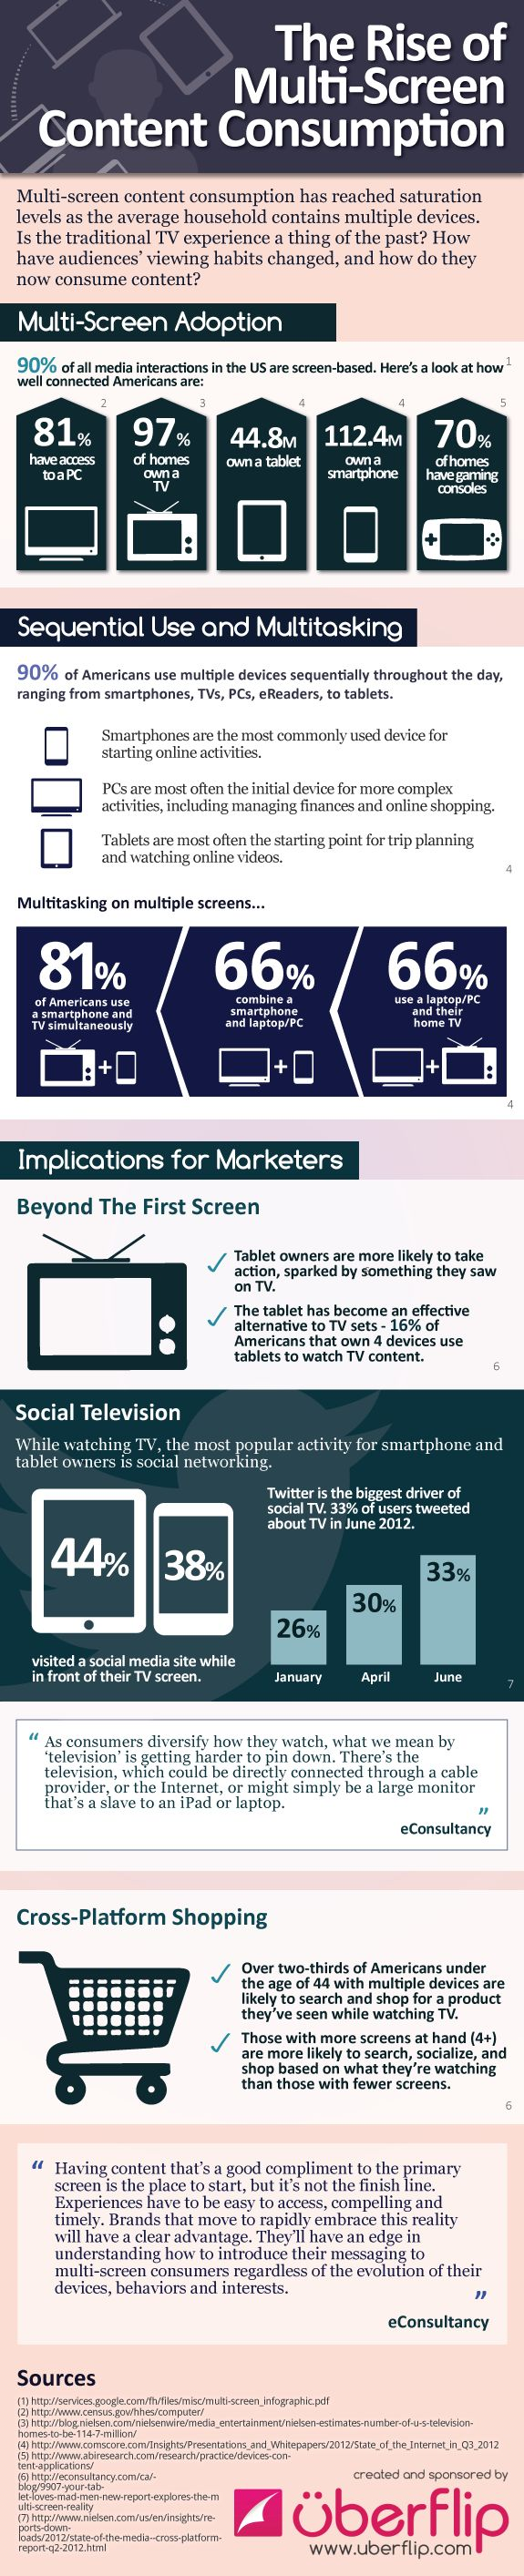 The Rise of Multi-Screen Content Consumption